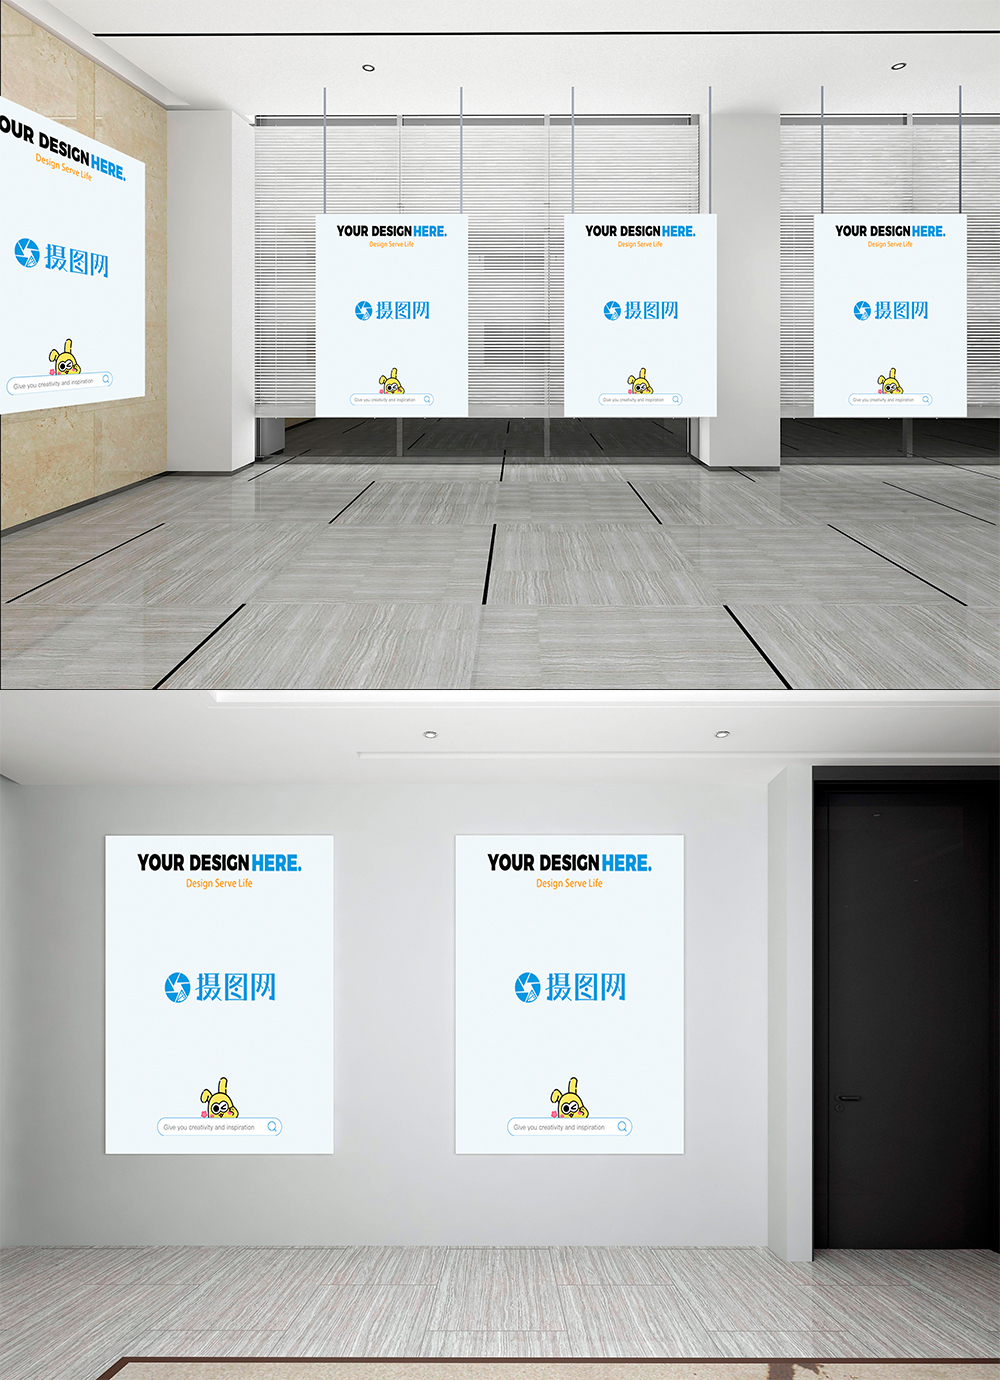 Exhibition Stand Mockup Psd Free : Picture frame mockup of exhibition hall template image picture free